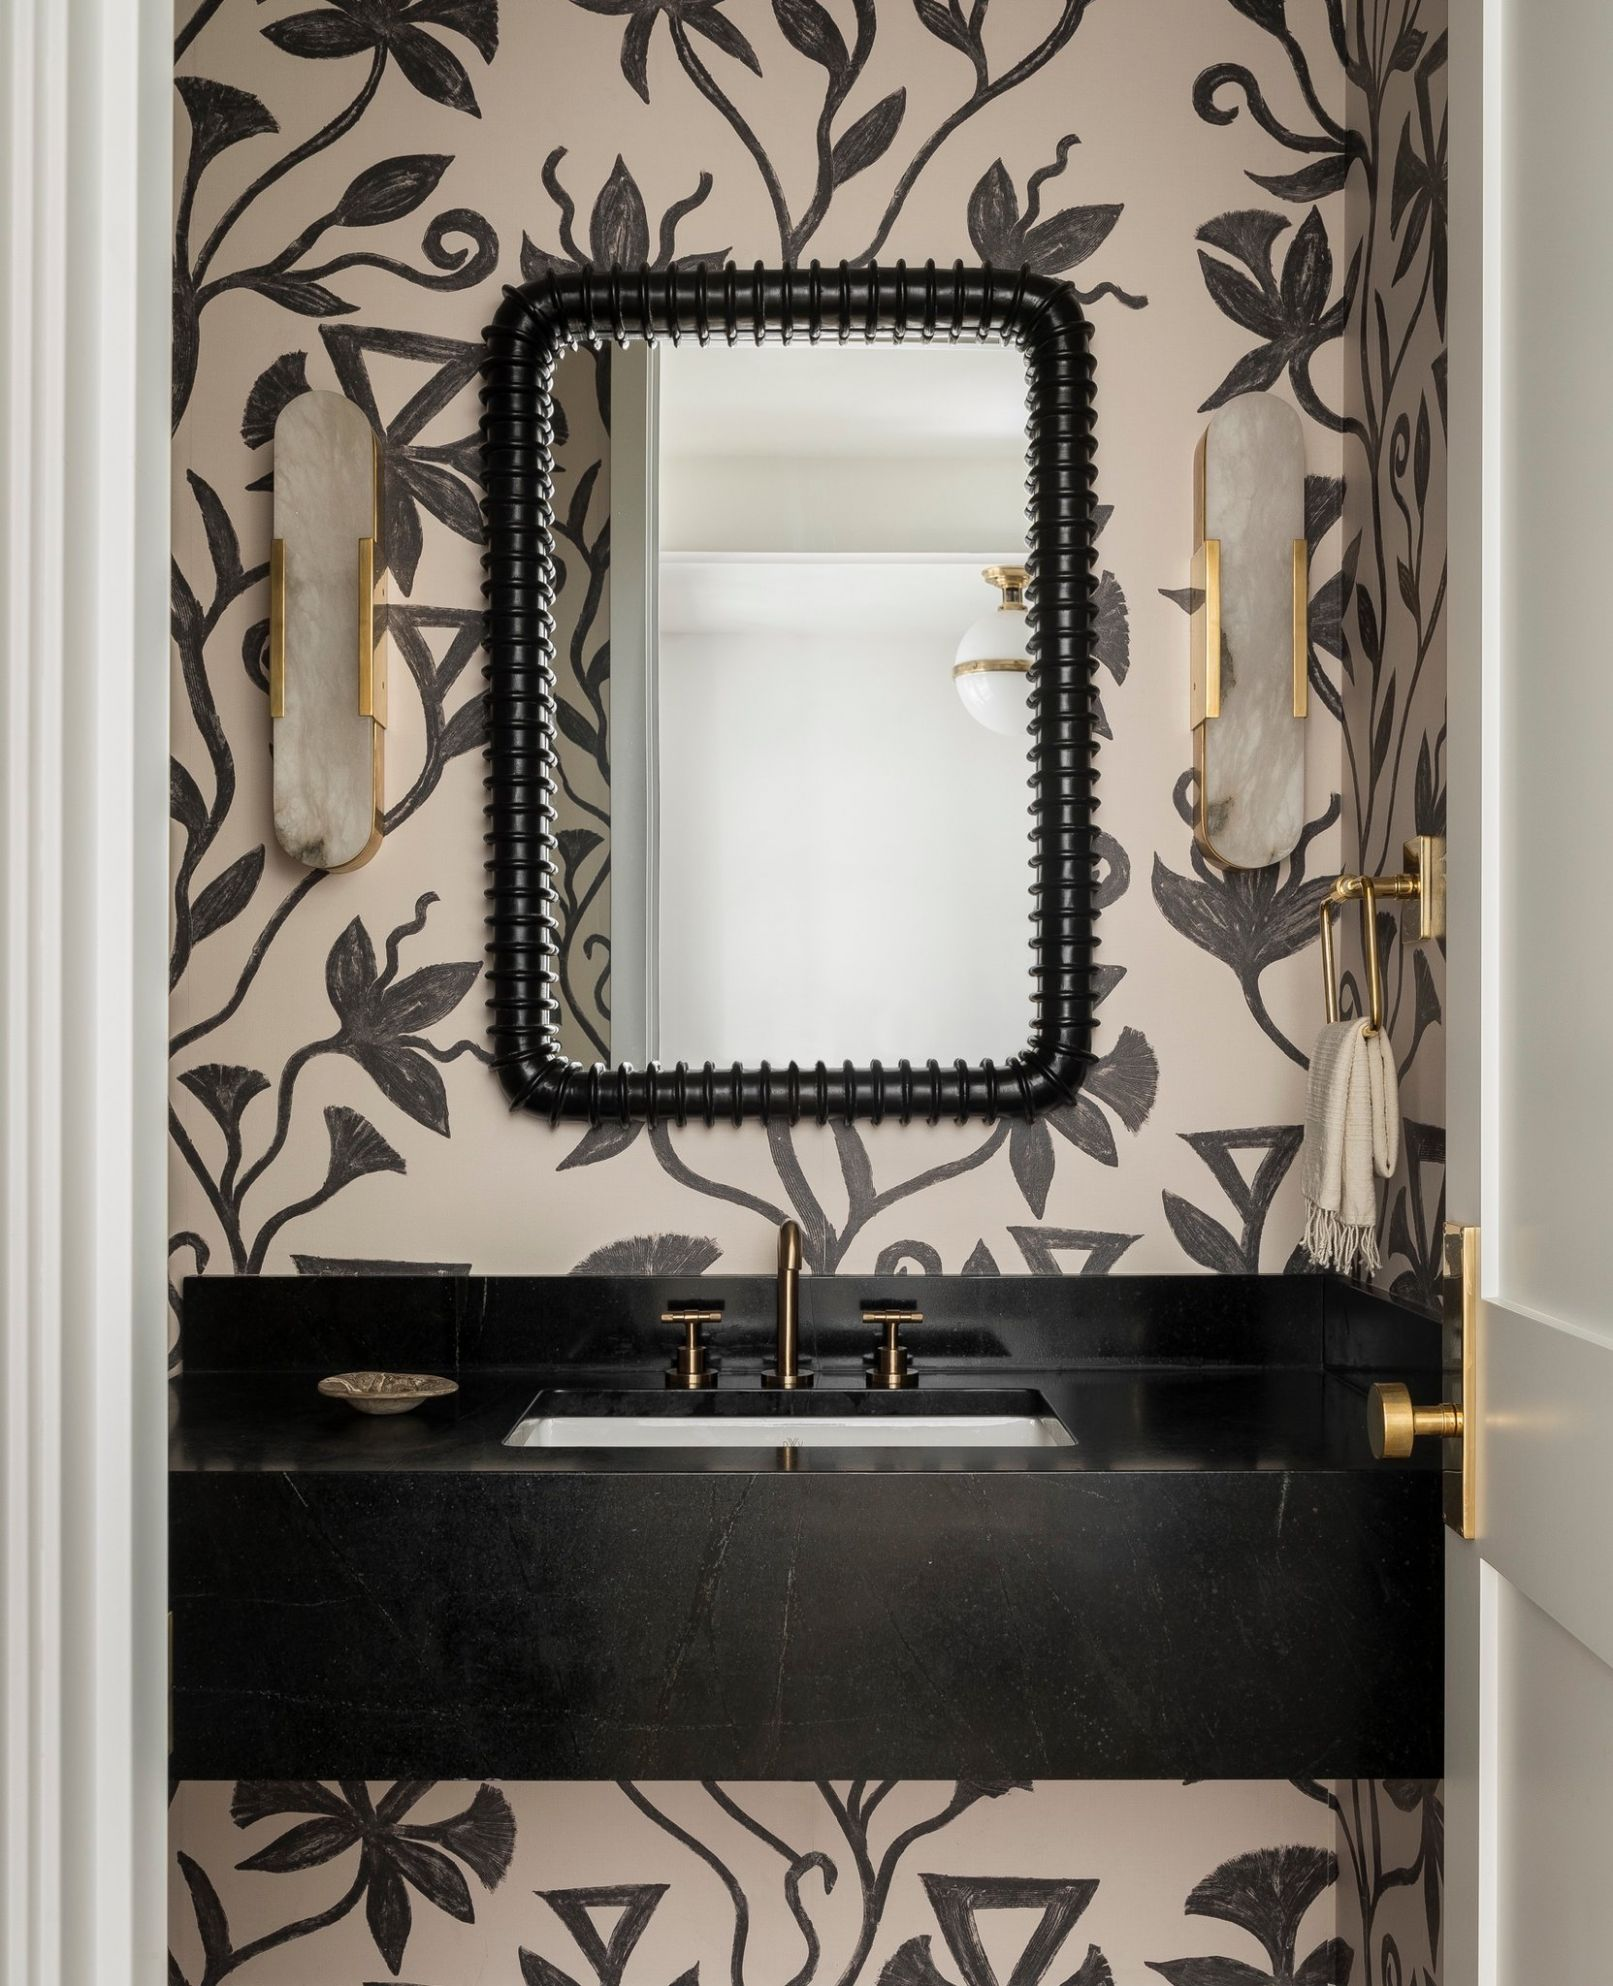 How to Make the Most of a Powder Room - The New York Times